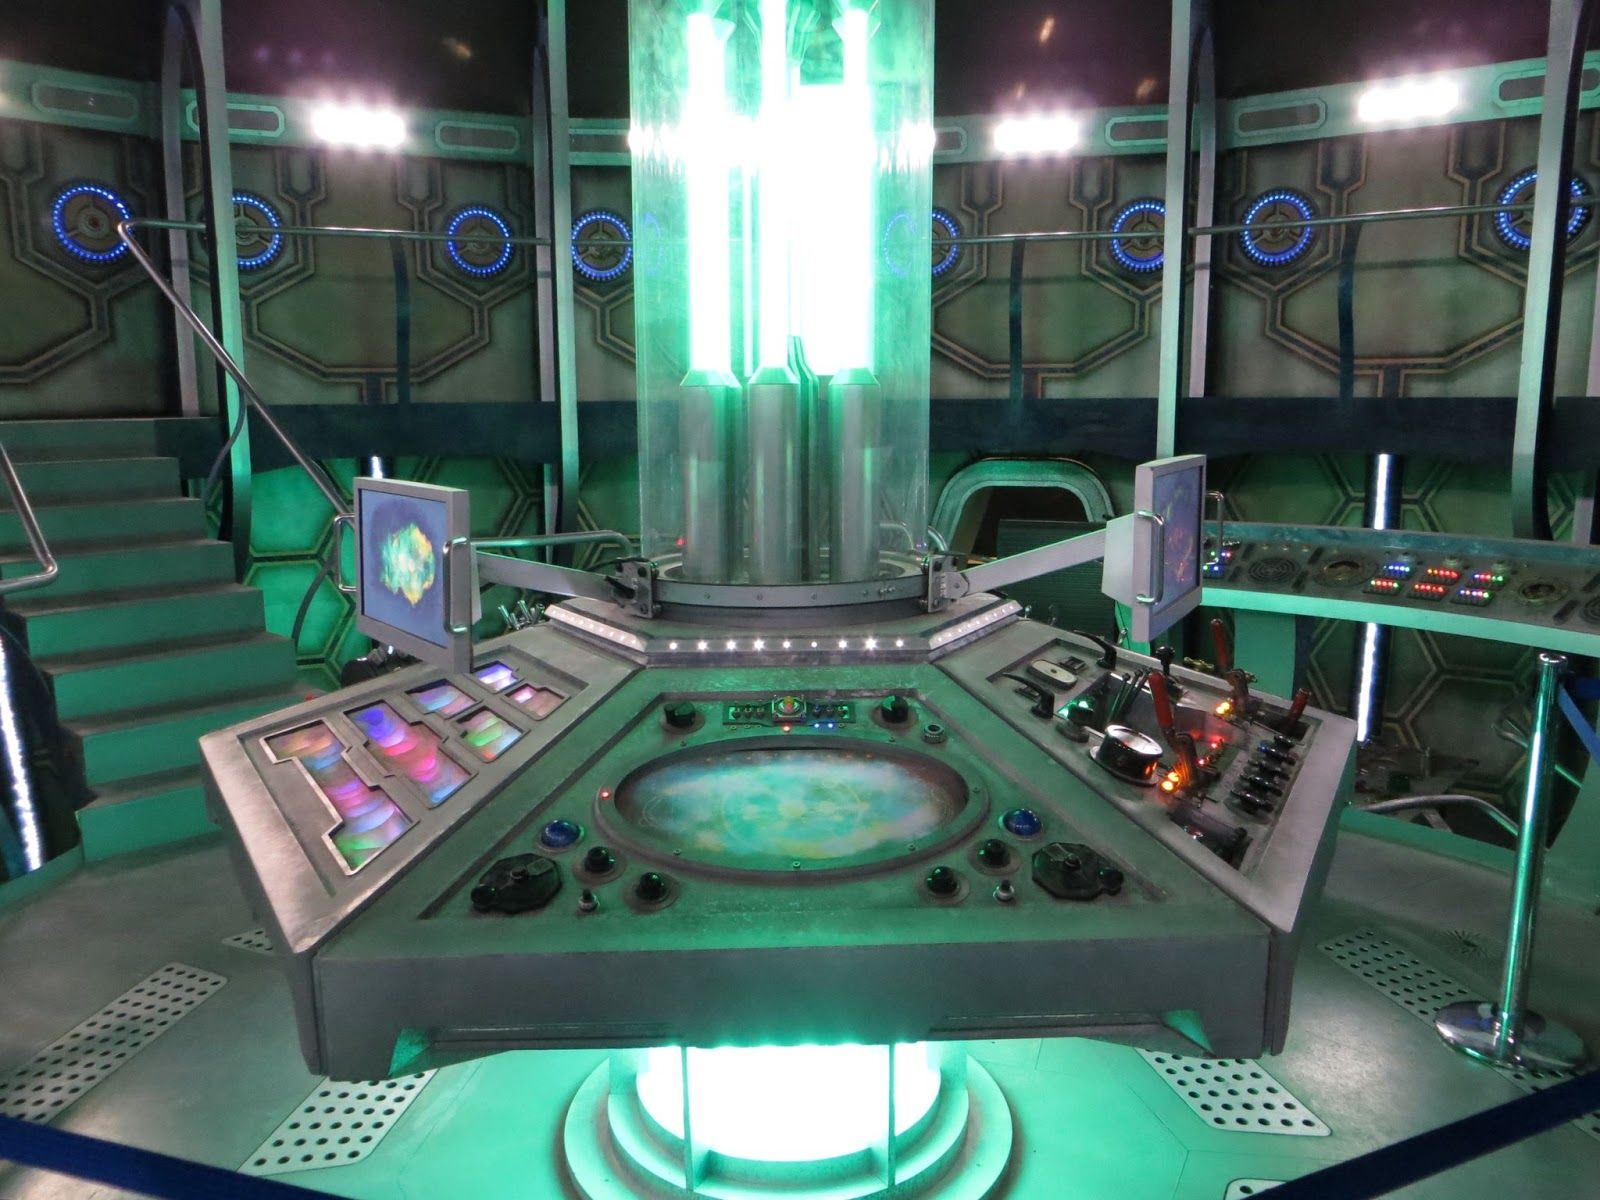 Inside Tardis Half Tube First Two Counters Frame